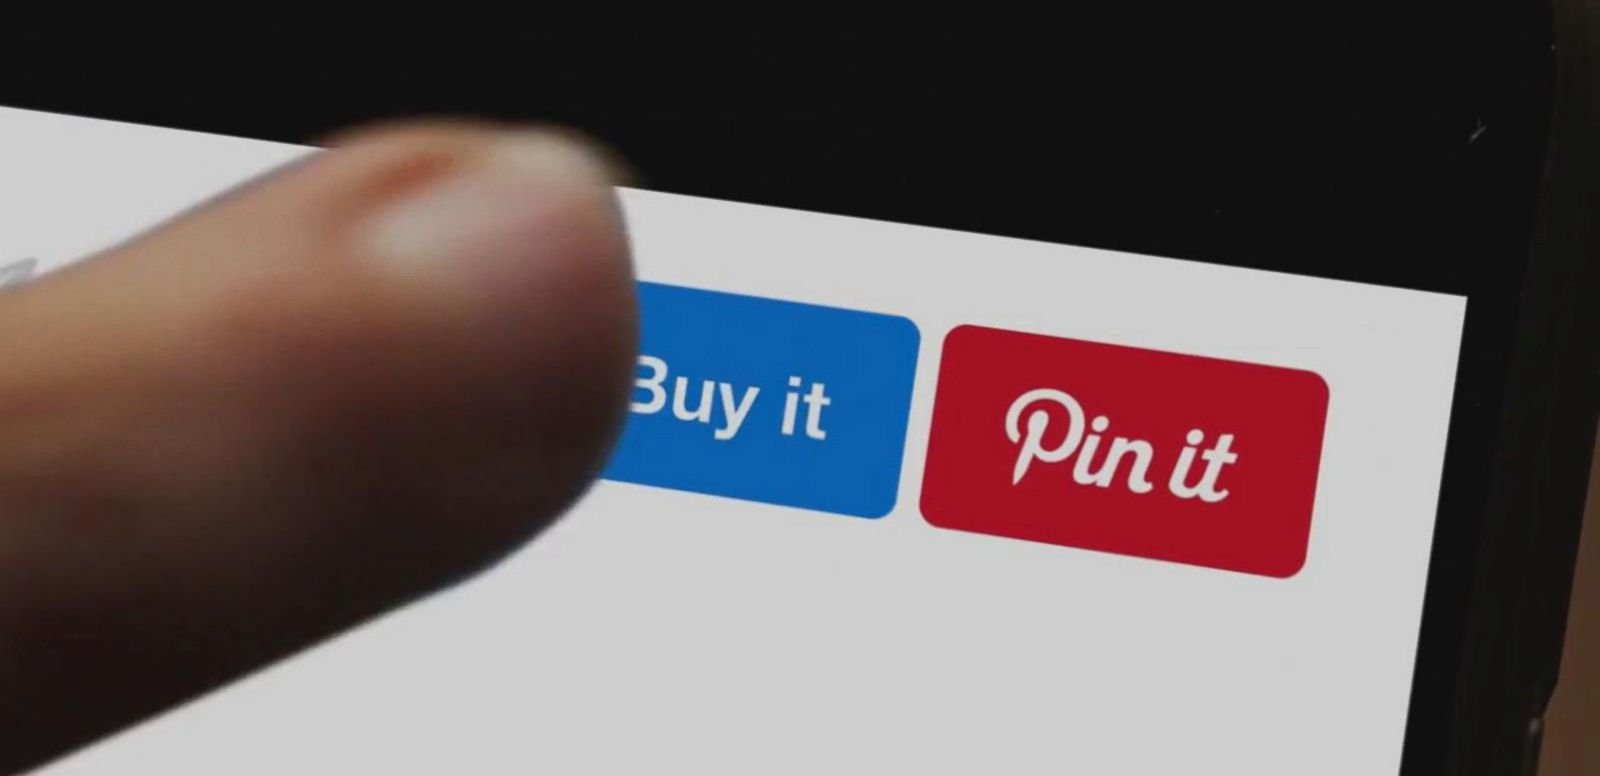 VIDEO: Pinterest Looking to Attract Shoppers With High Tech Features